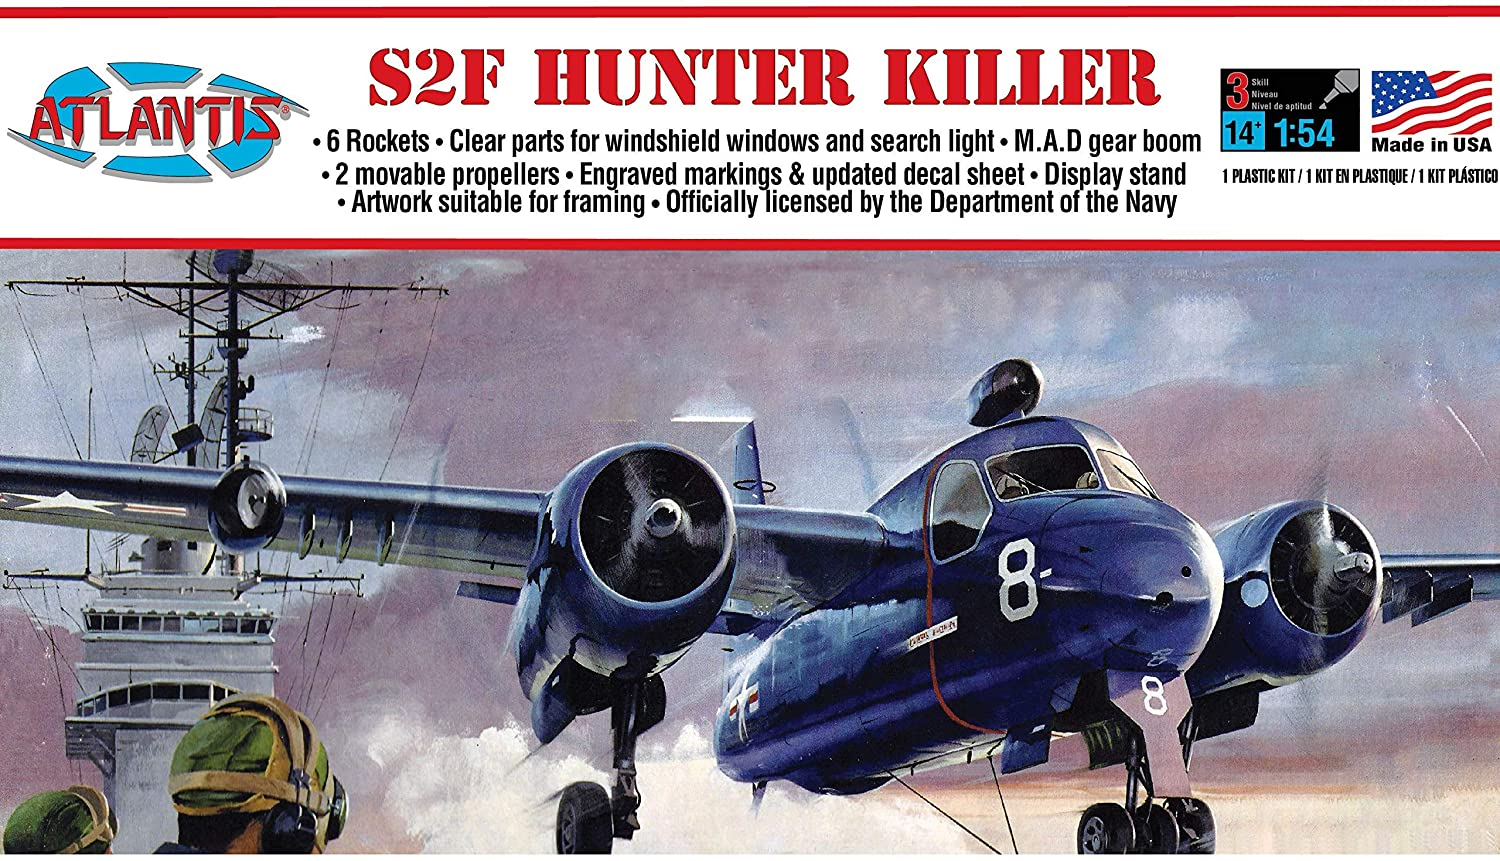 Atlantis Models S2F Hunter Killer US Navy 1/54 Scale